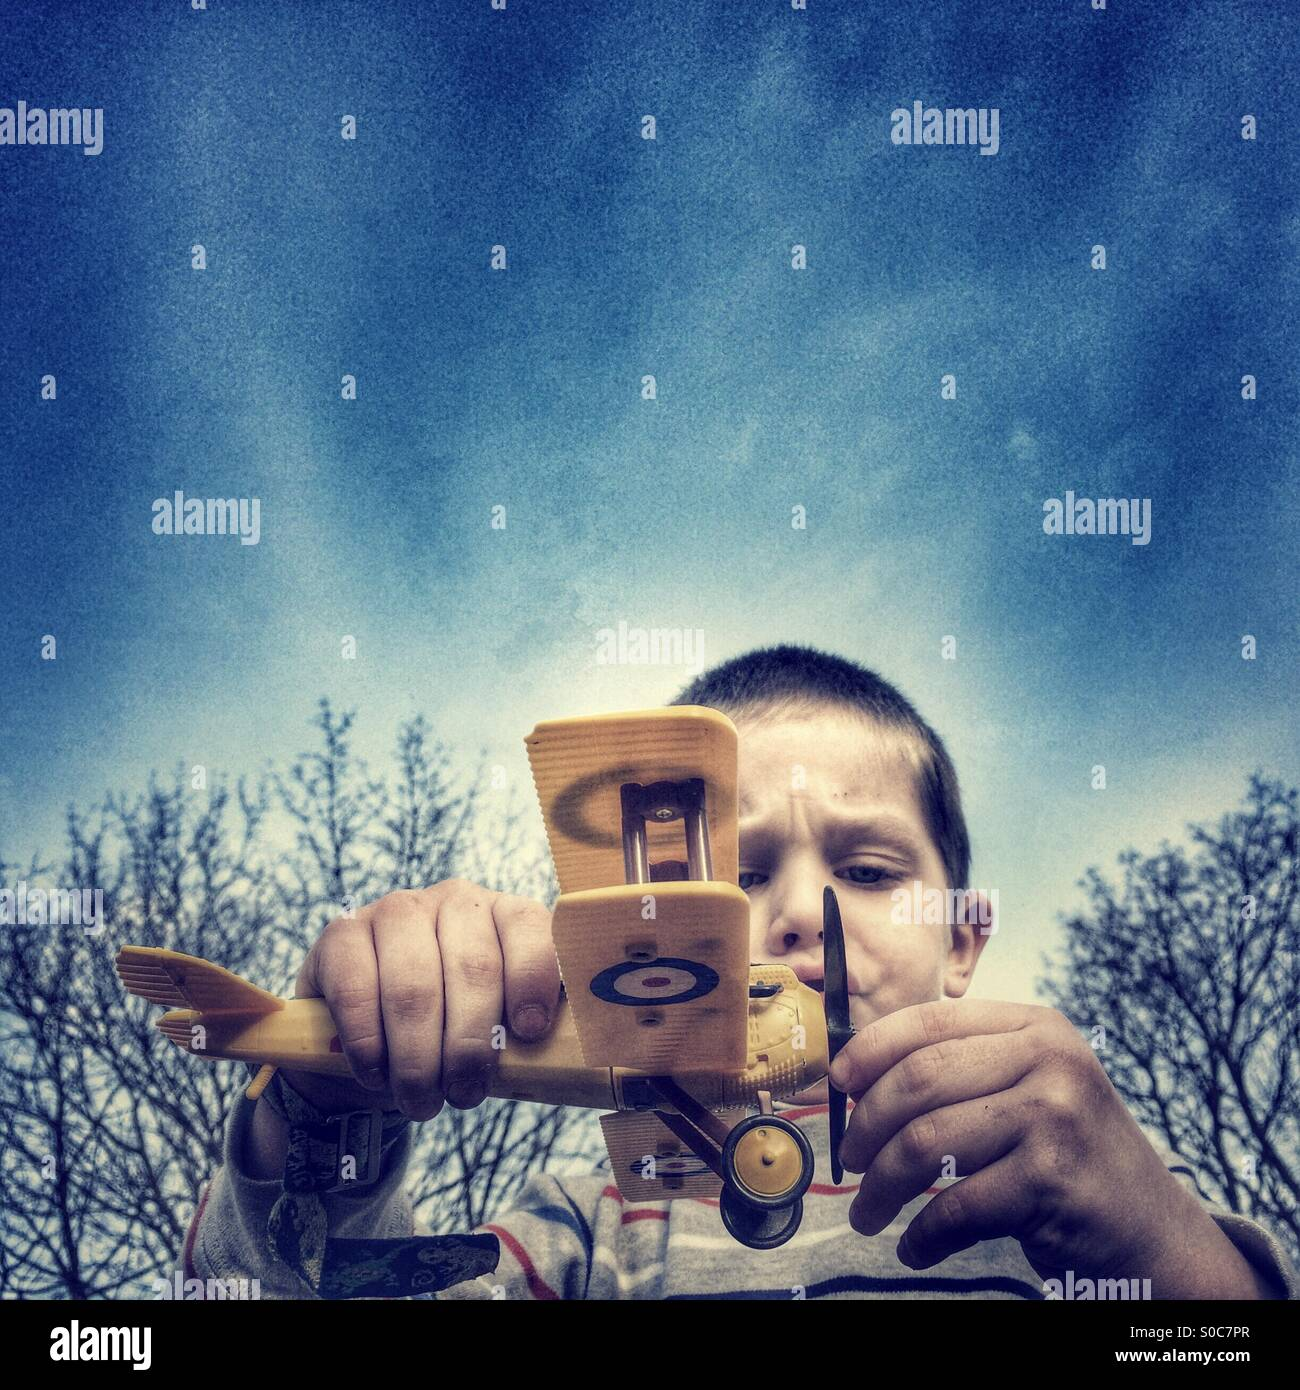 Young boy flying a model airplane - Stock Image